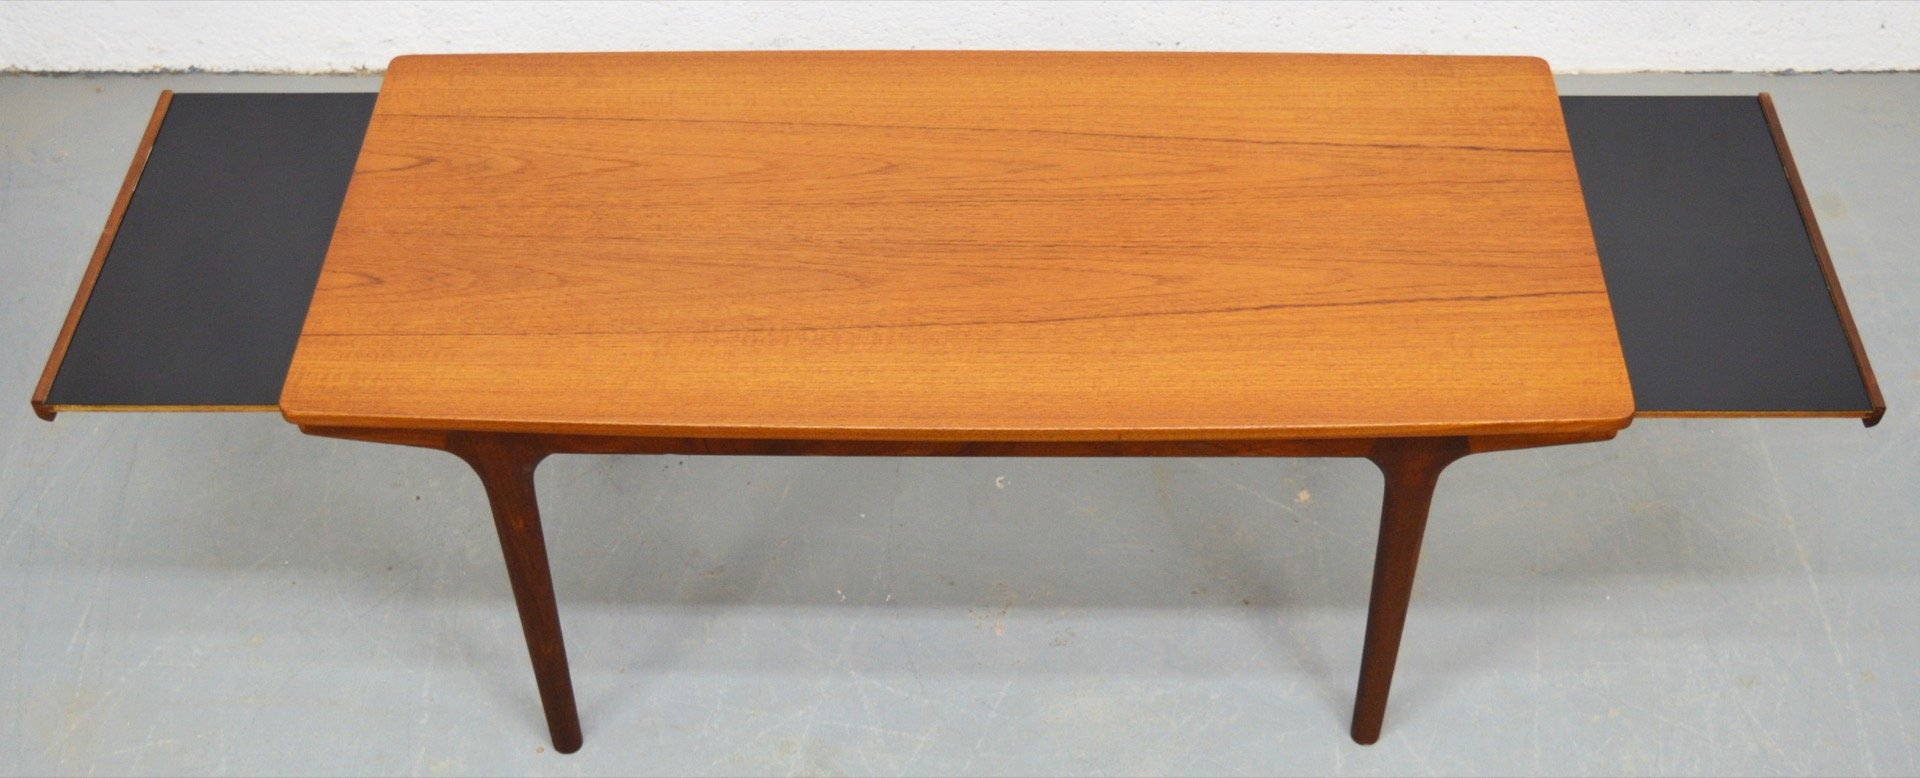 Mid century teak and melamine extendable coffee table by mcintosh for sale at pamono - Telescopic coffee table ...